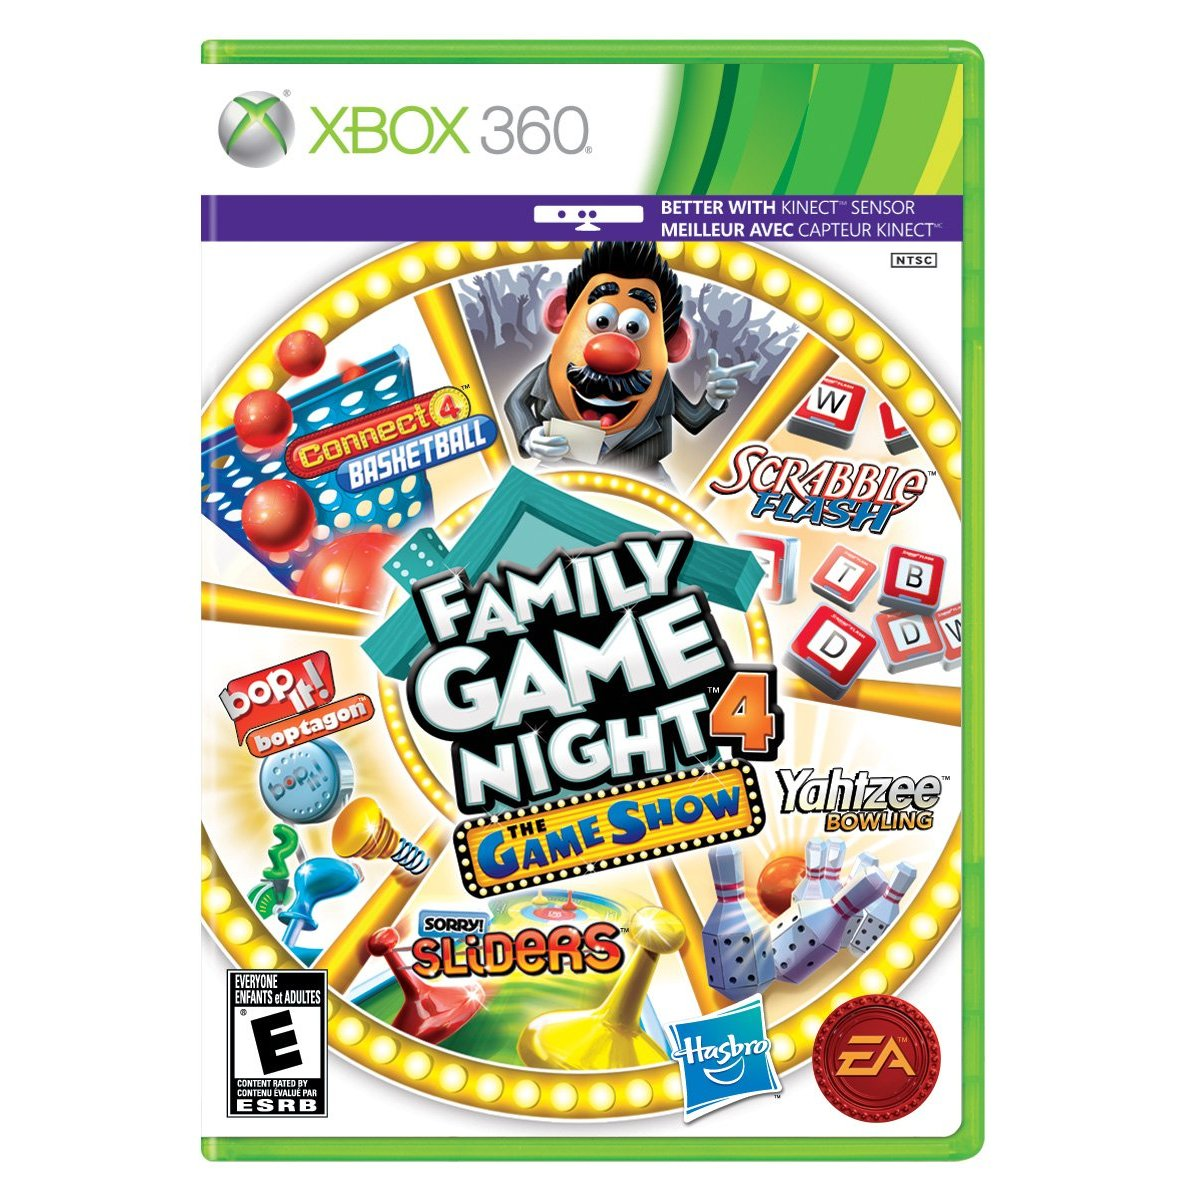 Family Game Night 4 : The Show (Xbox 360) Game Review